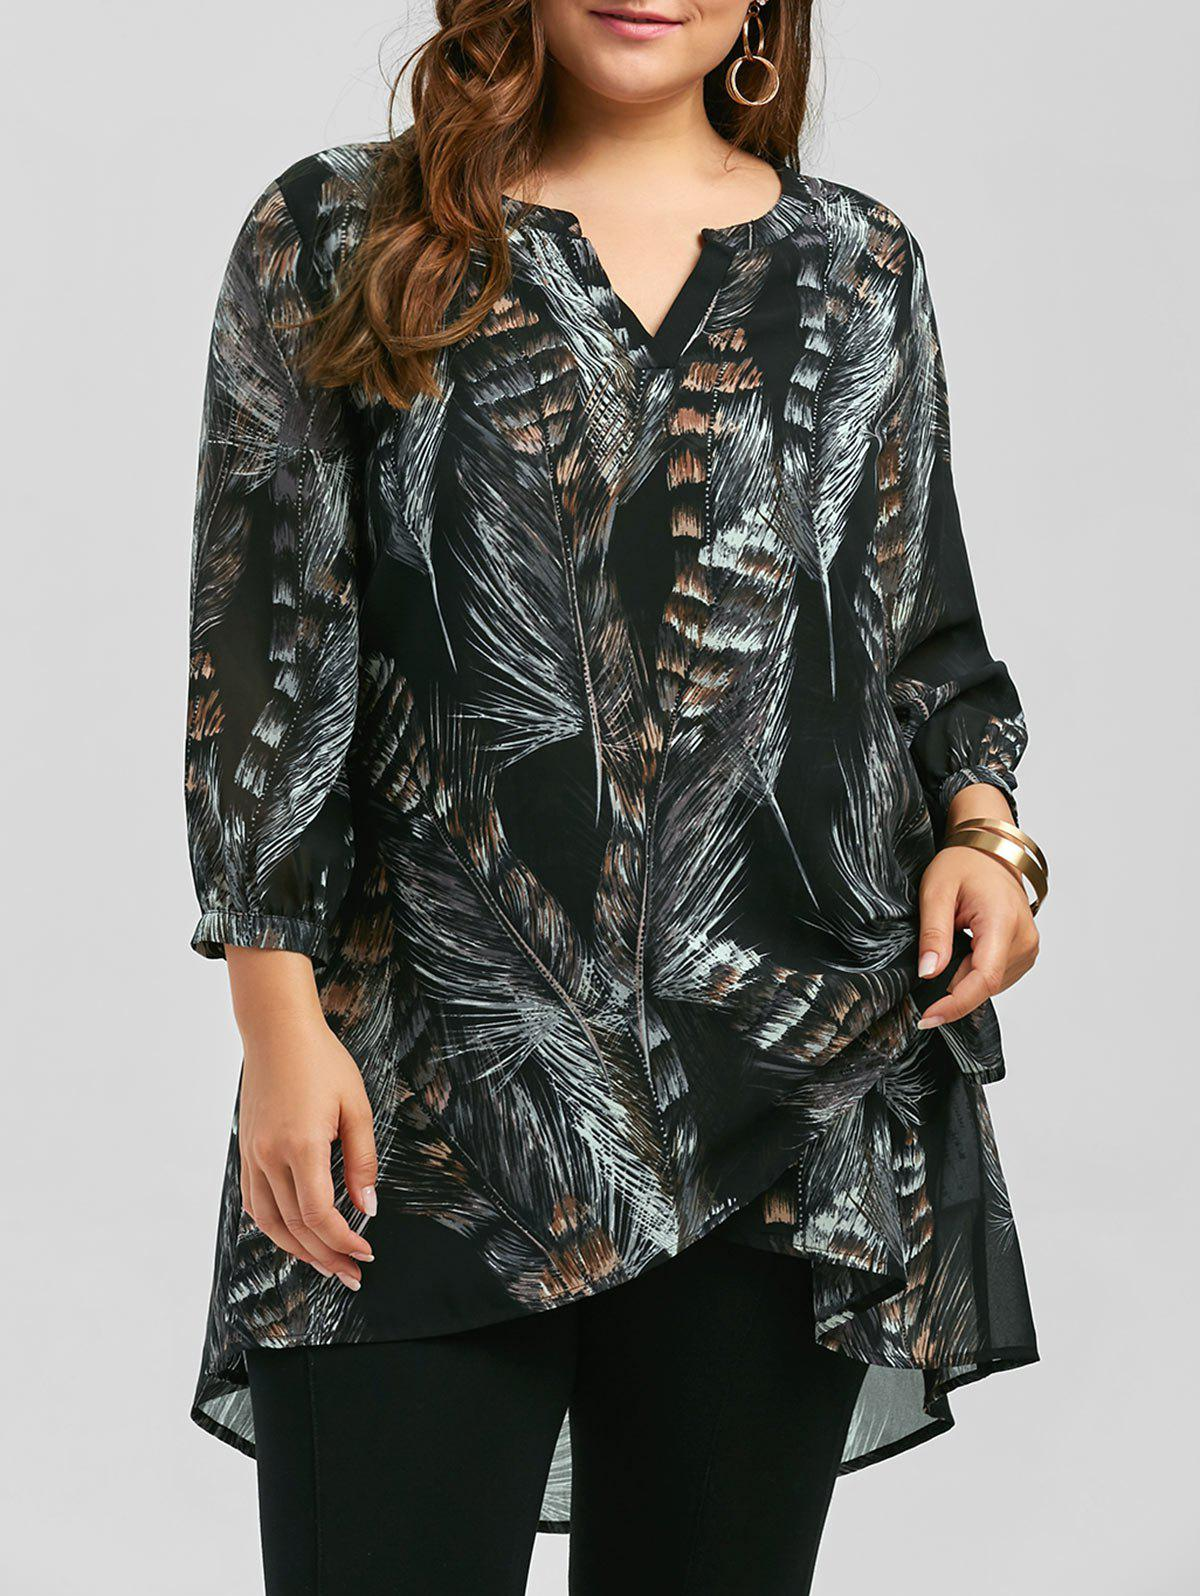 f34c27b3a84 Fashion Plus Size Long Sleeve Feather Print Tunic Top